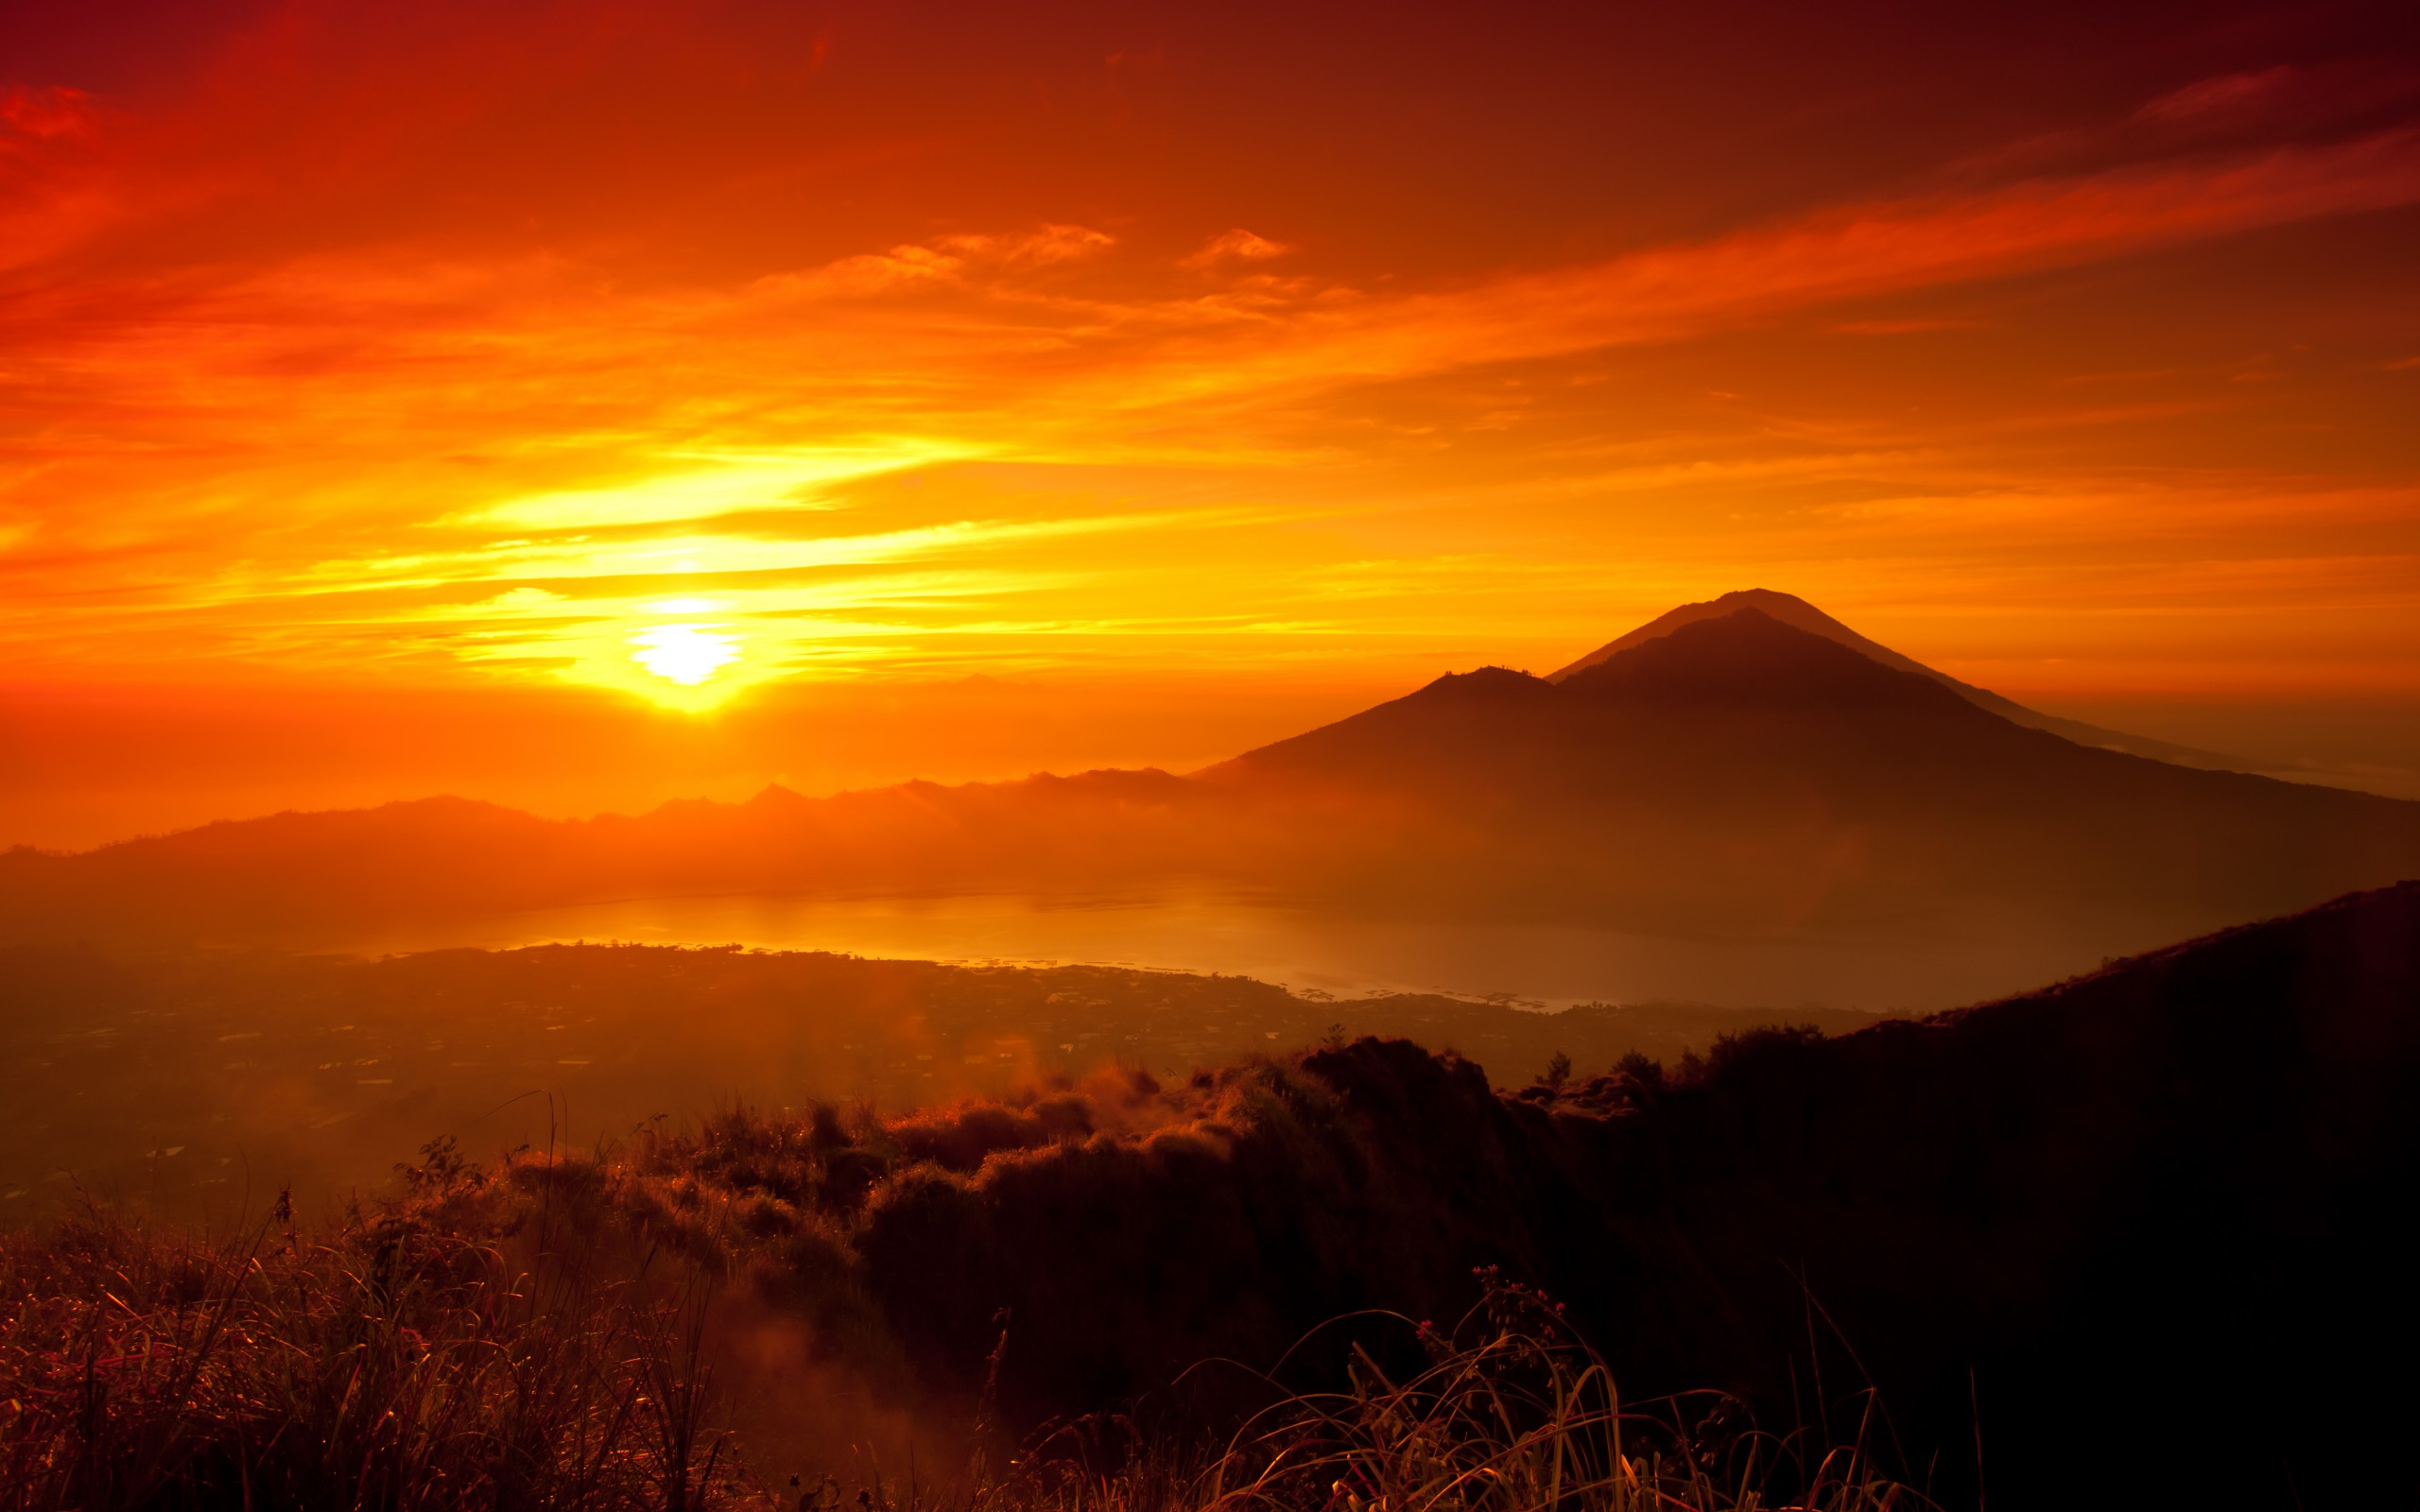 sunrise pictures free - HD1920×1080